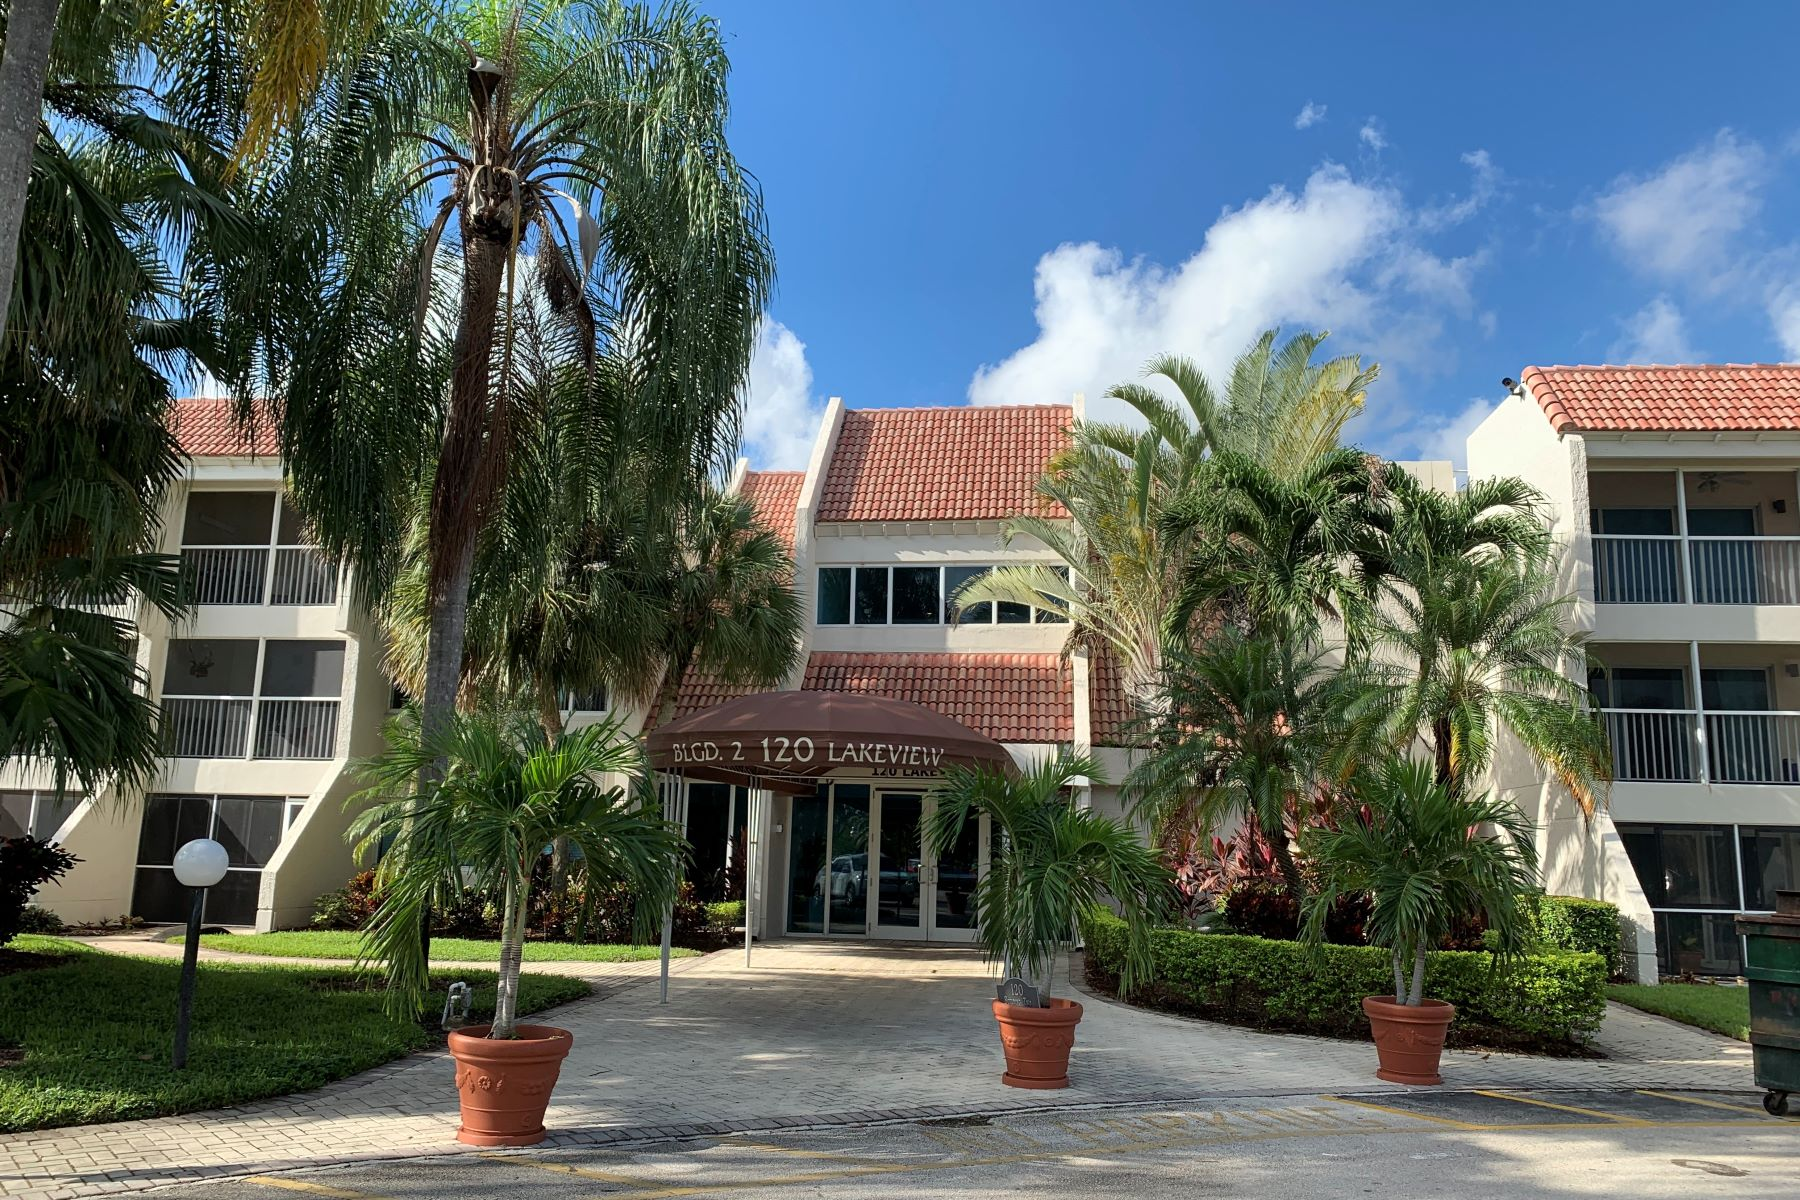 Condominiums for Sale at 120 Lakeview Dr 106 Weston, Florida 33326 United States